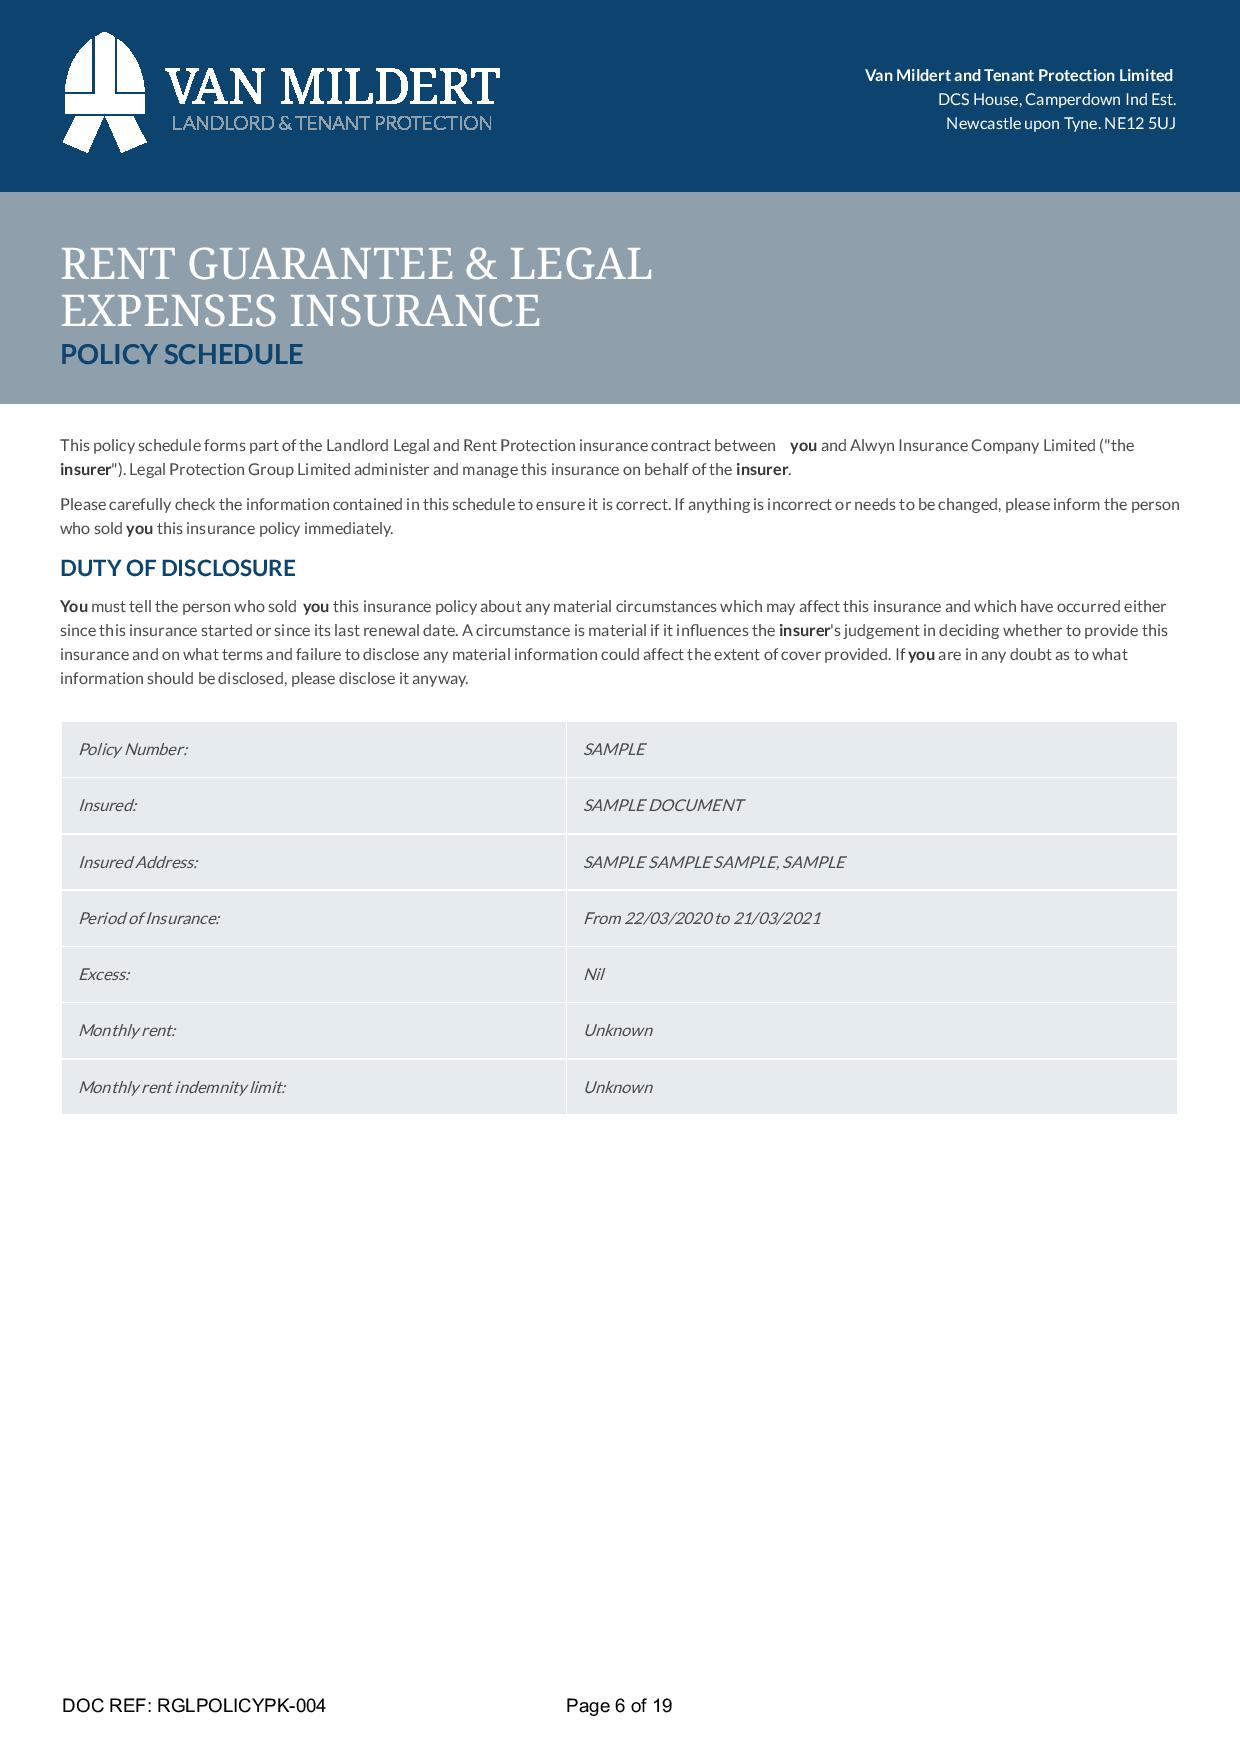 mansons_sample-policy-page-006